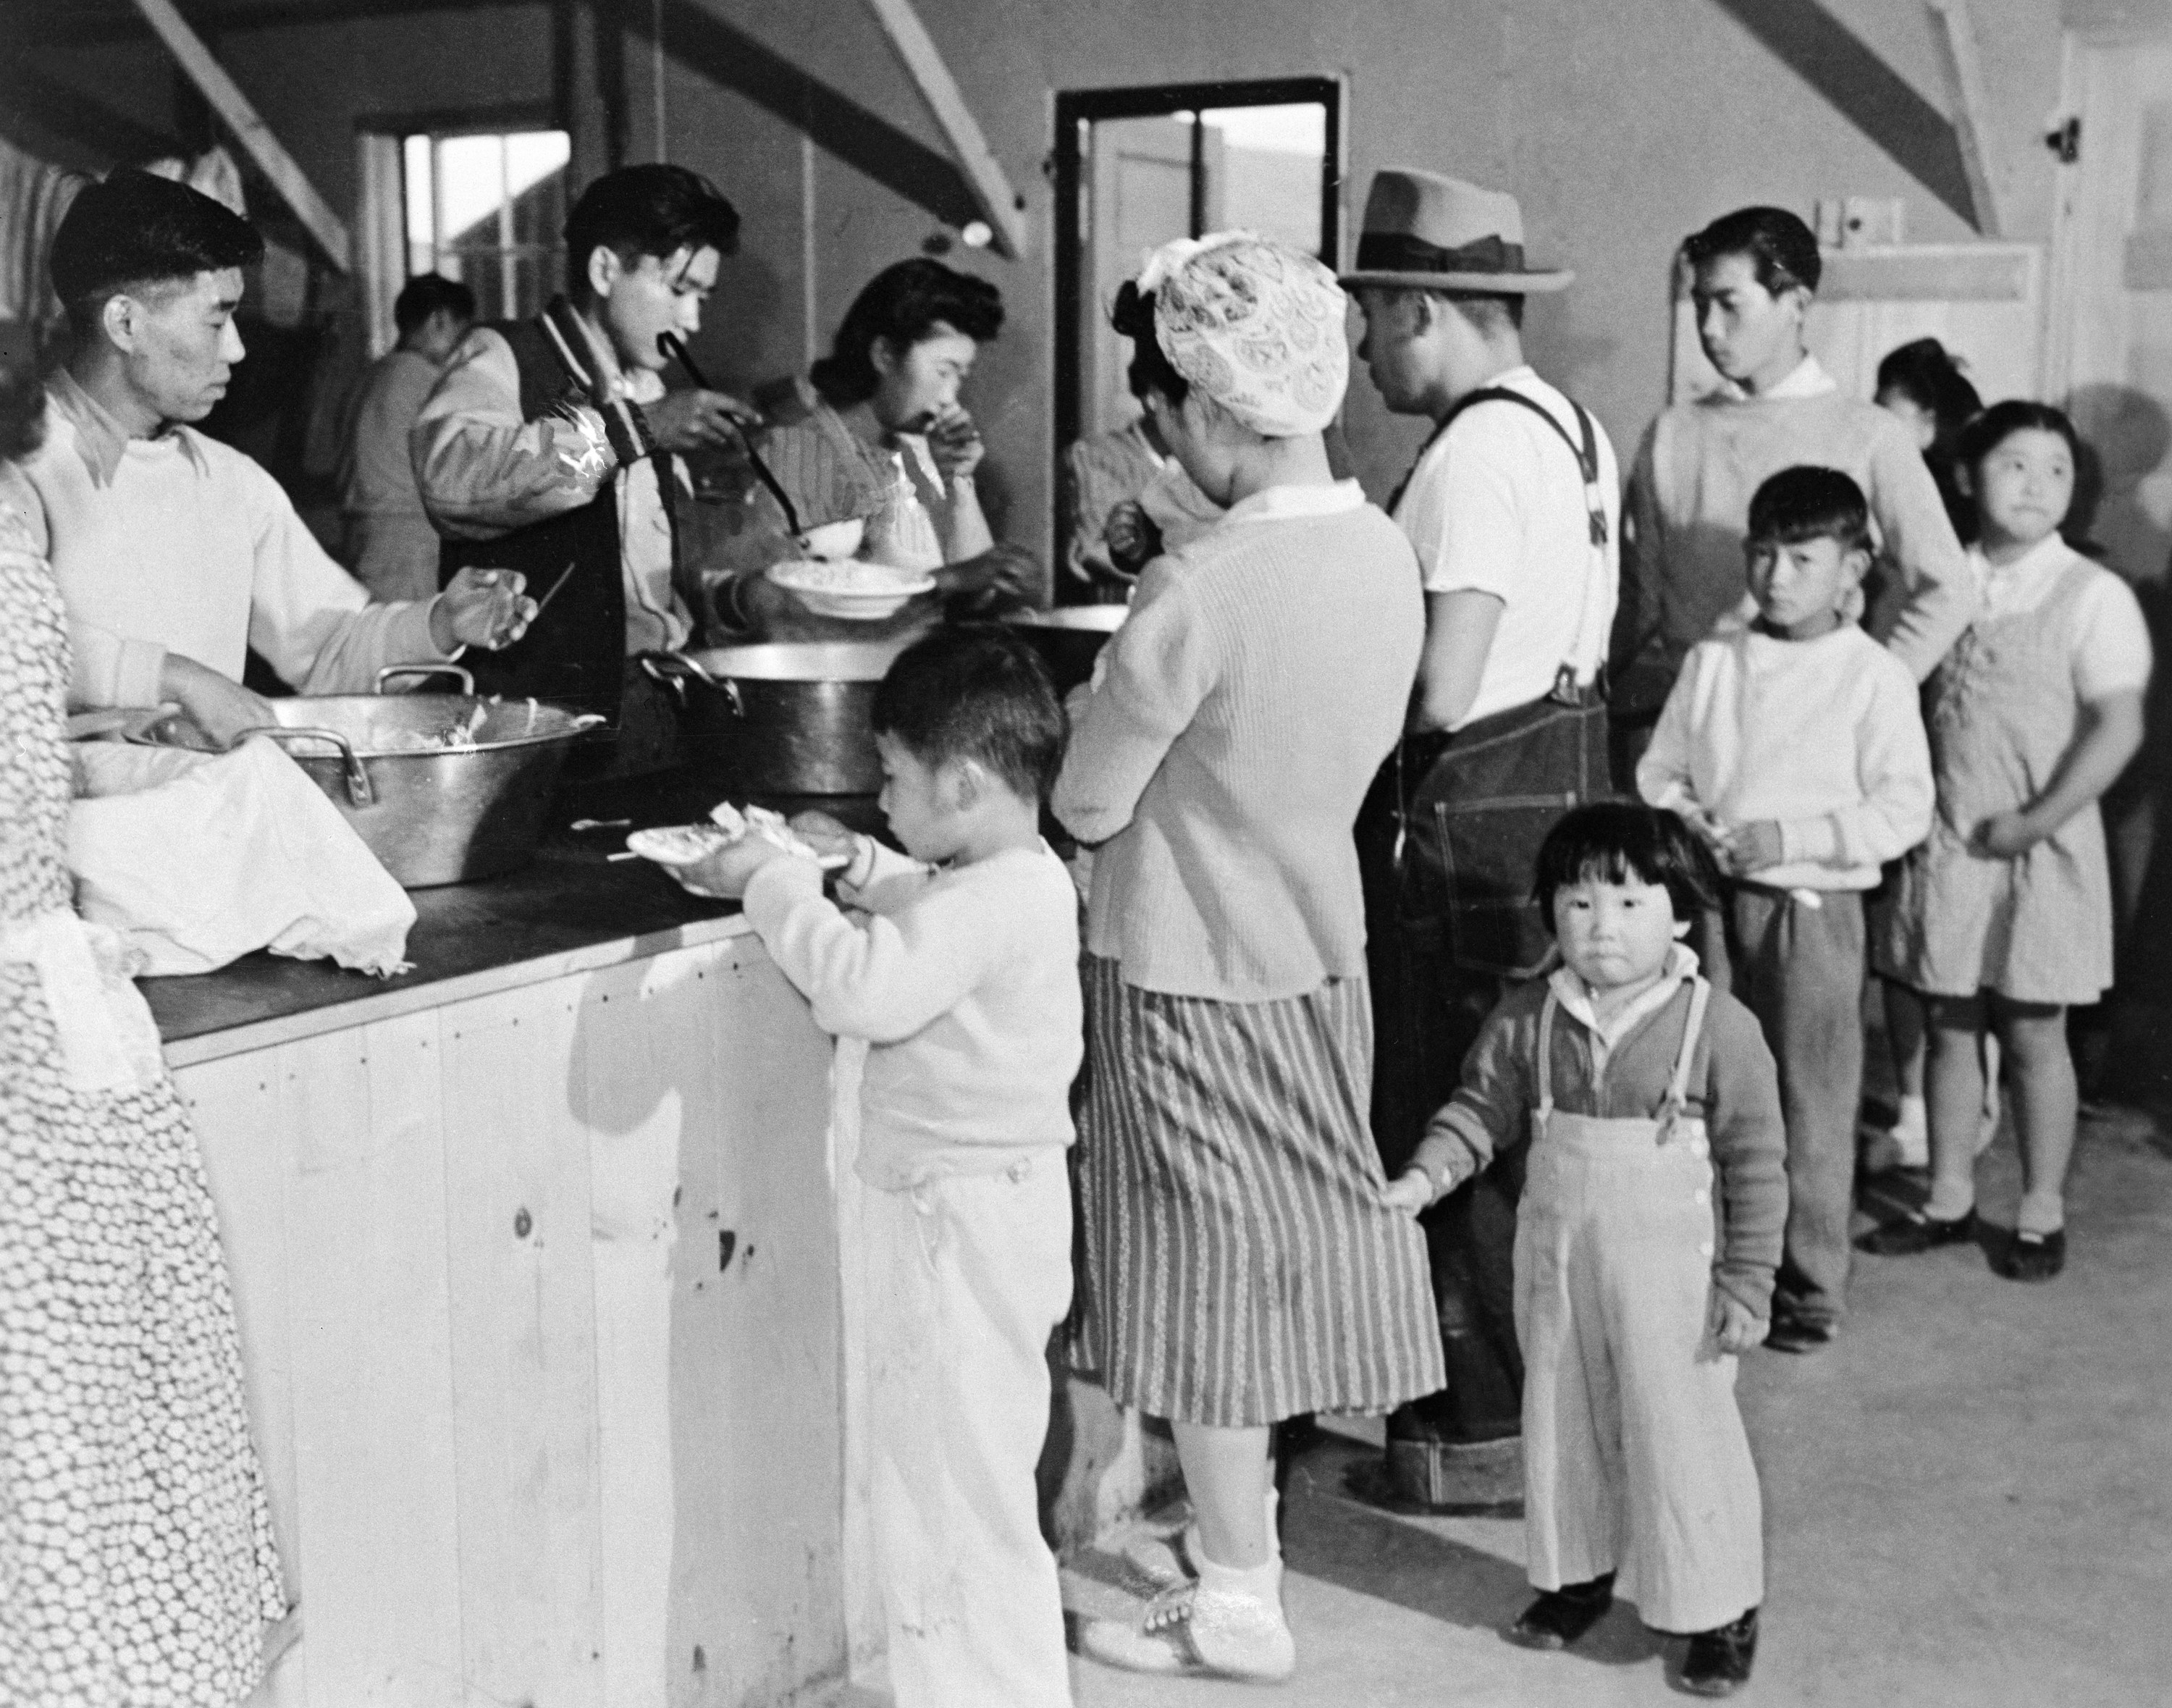 A little boy holding onto the skirt of a woman as she is served a plate of food